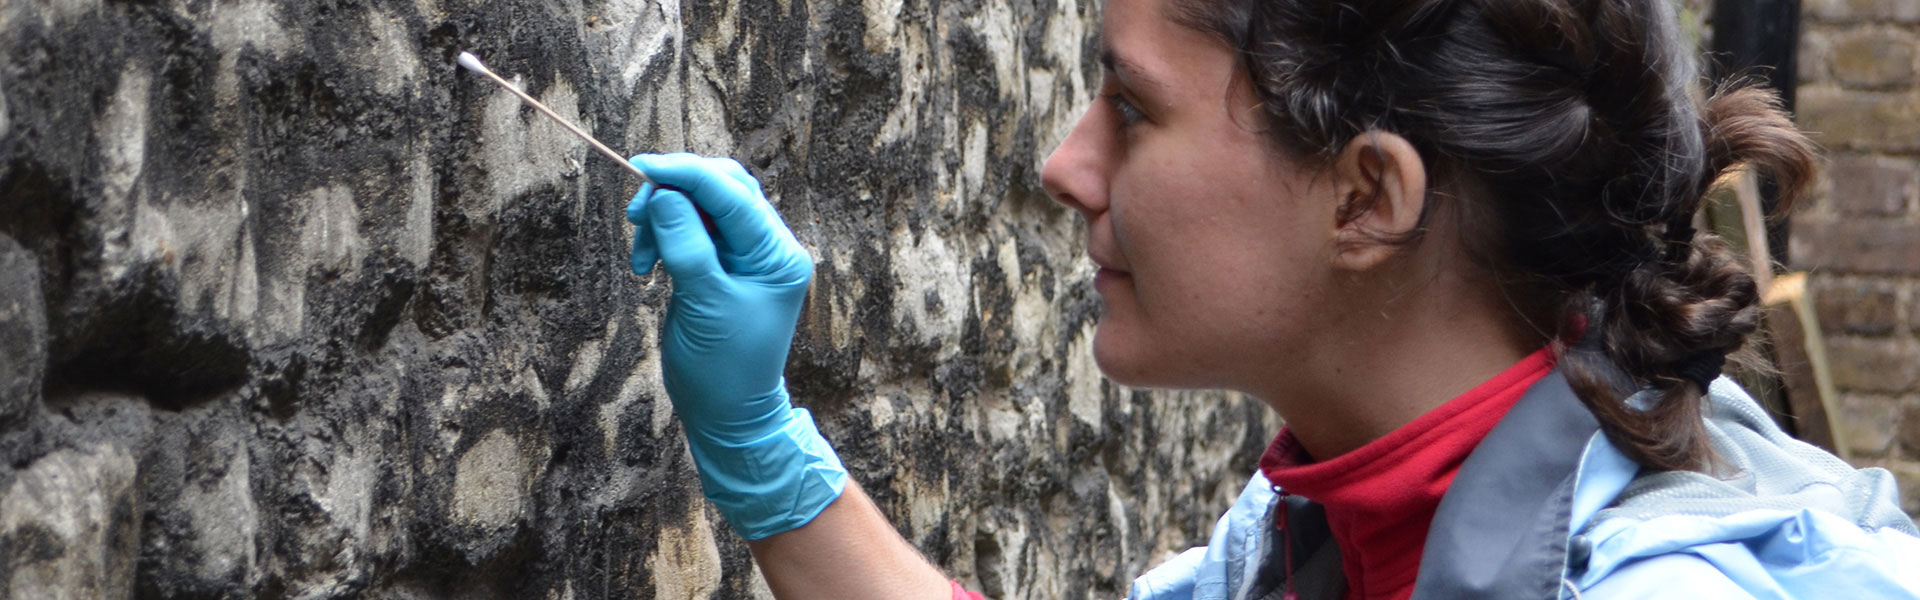 Person swabbing the wall of the Tower of London for the Microverse project